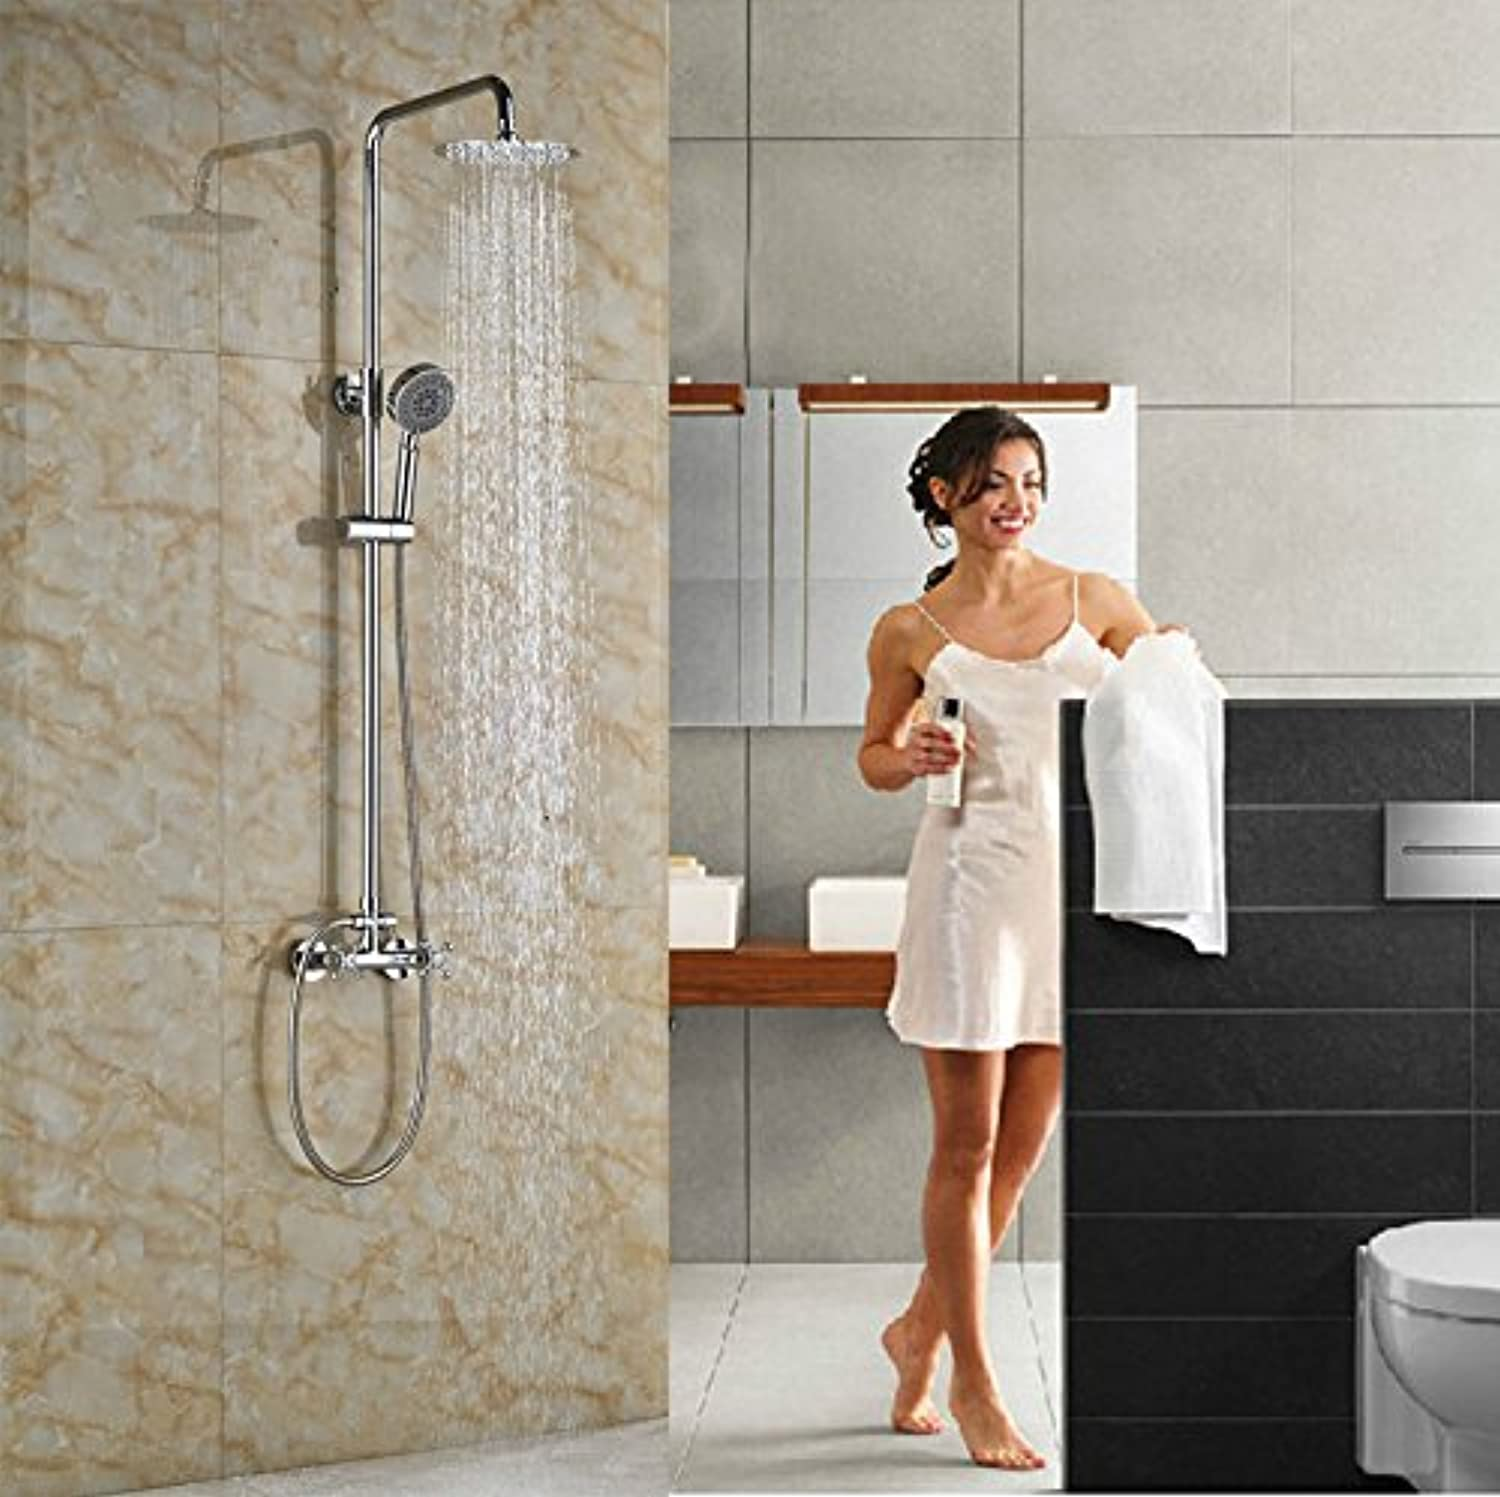 Contemporary Wall Mounted Single Lever with Hand Shower Brass Chrome Finish Tub Shower Set,Chocolate